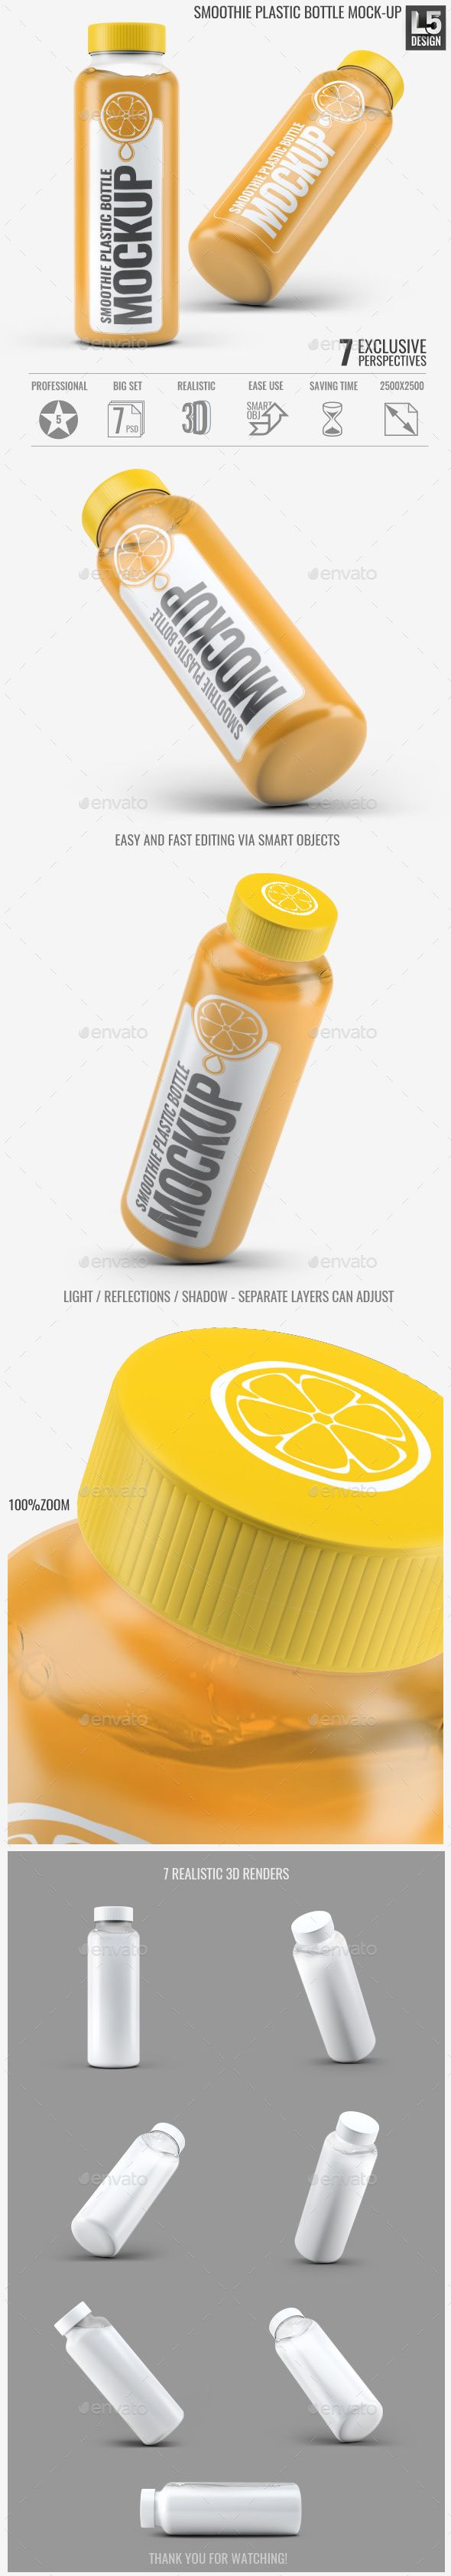 Smoothie Plastic Bottle Mock-Up. Download here: http://graphicriver.net/item/smoothie-plastic-bottle-mockup/15513879?ref=ksioks